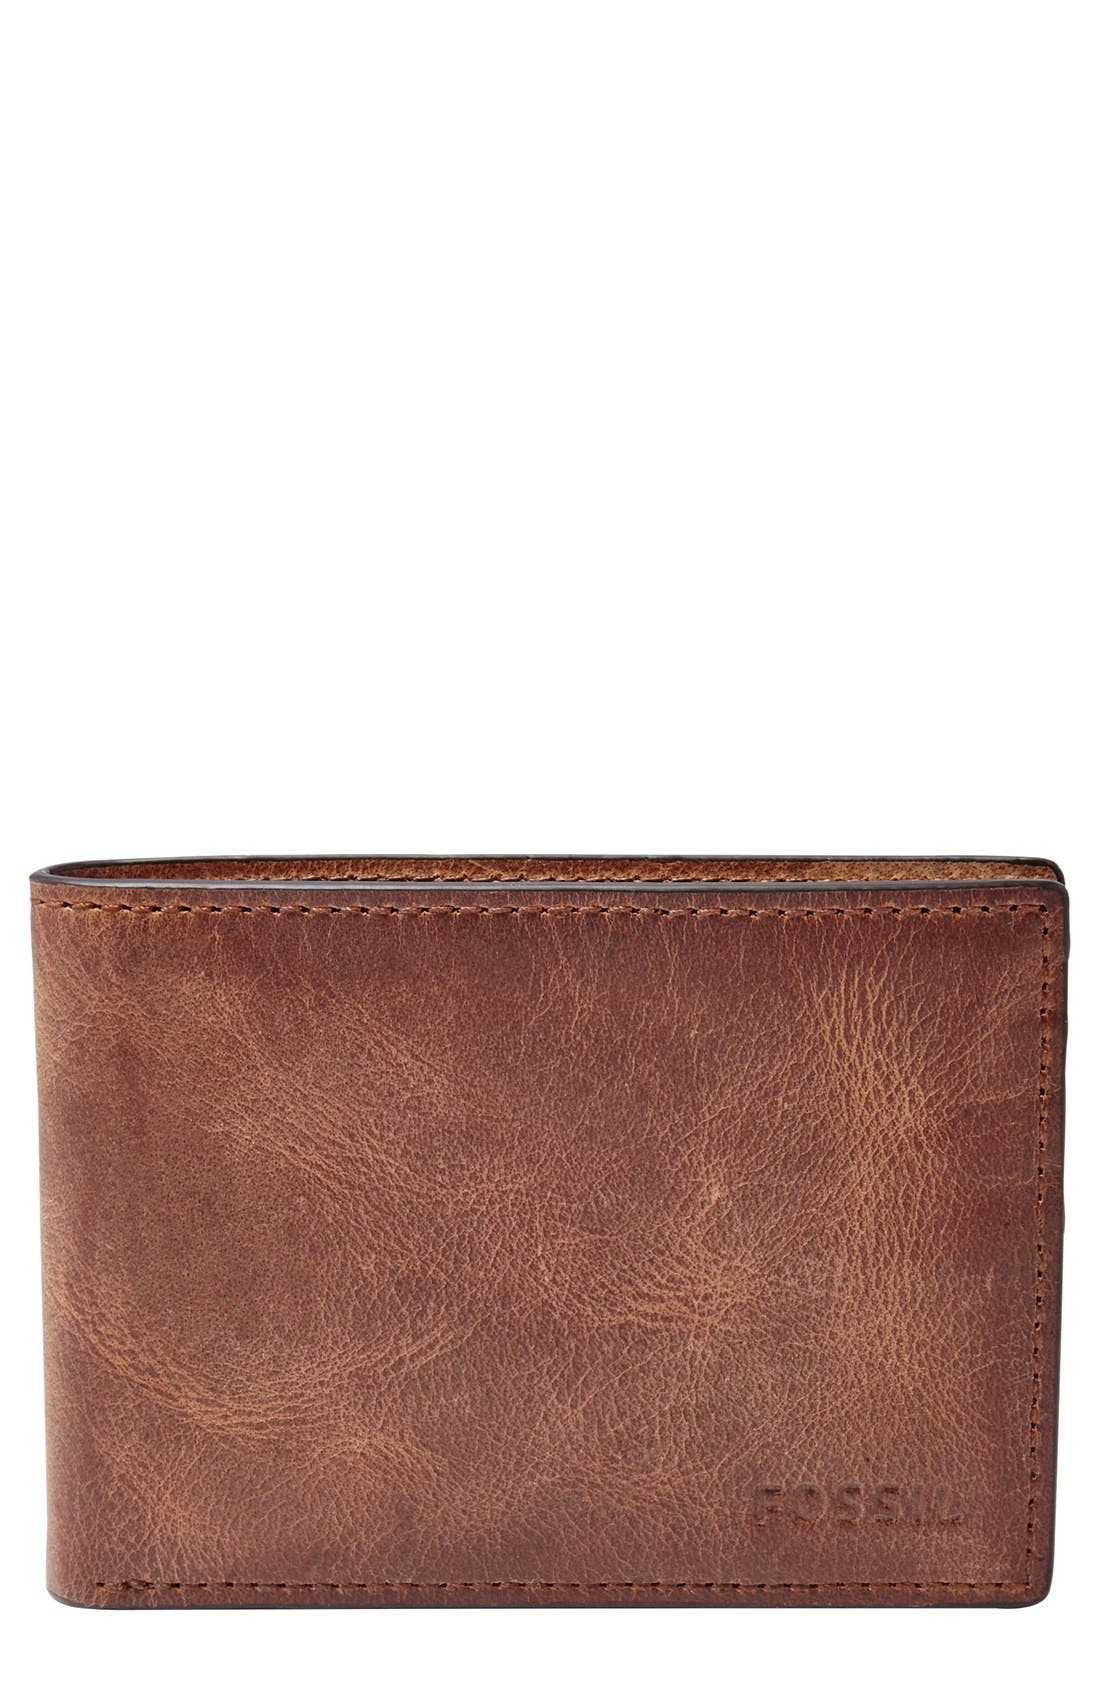 'Derrick' Leather Front Pocket Bifold Wallet,                             Main thumbnail 1, color,                             200